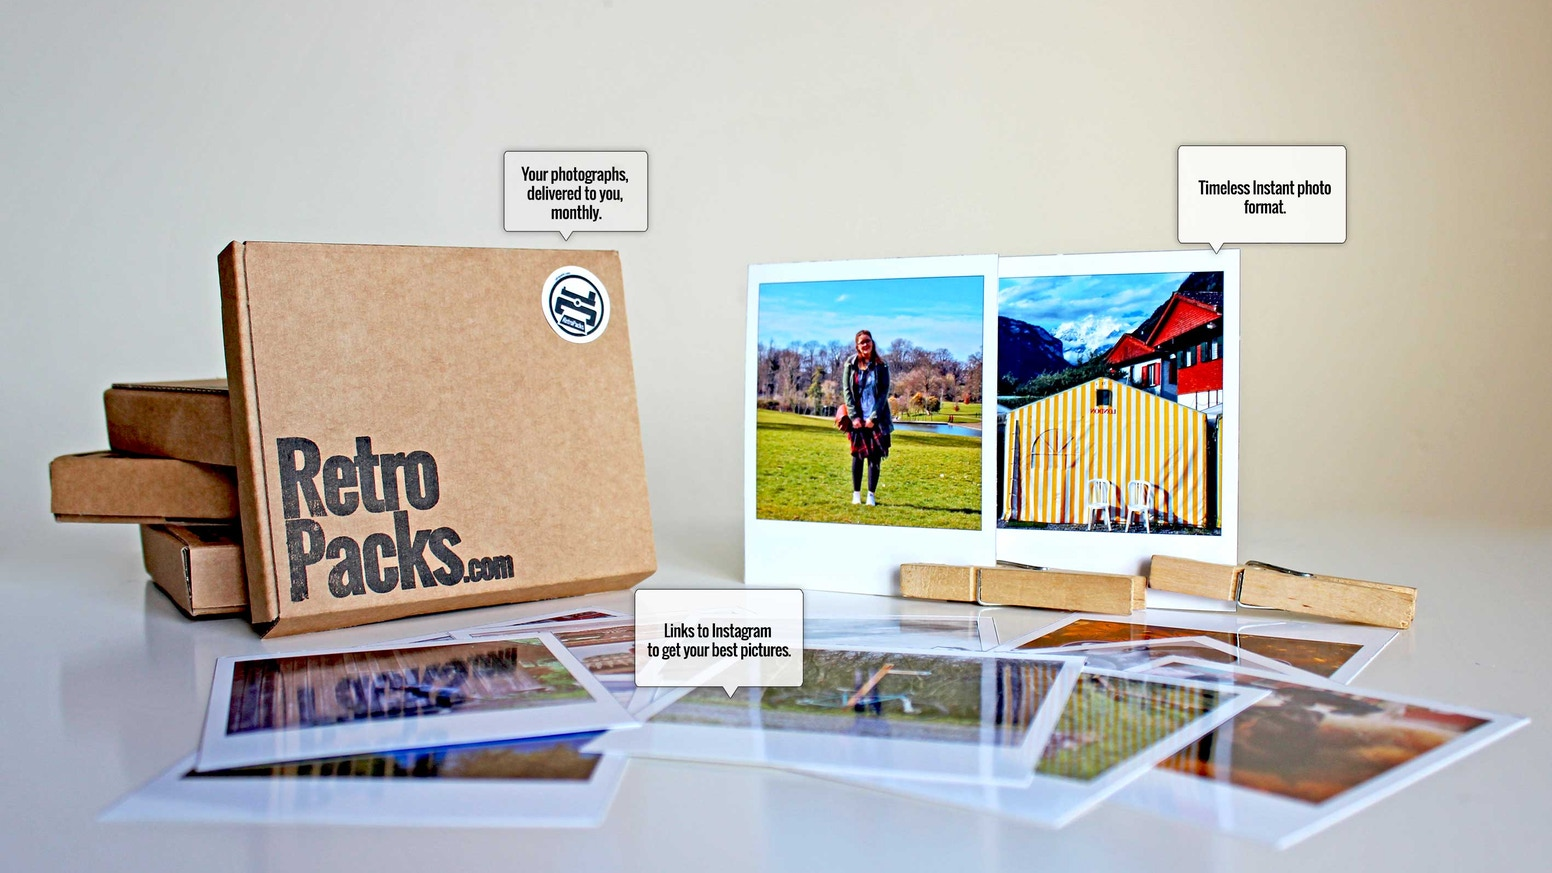 A monthly subscription service that links to Instagram to bring physical photographs back to life.